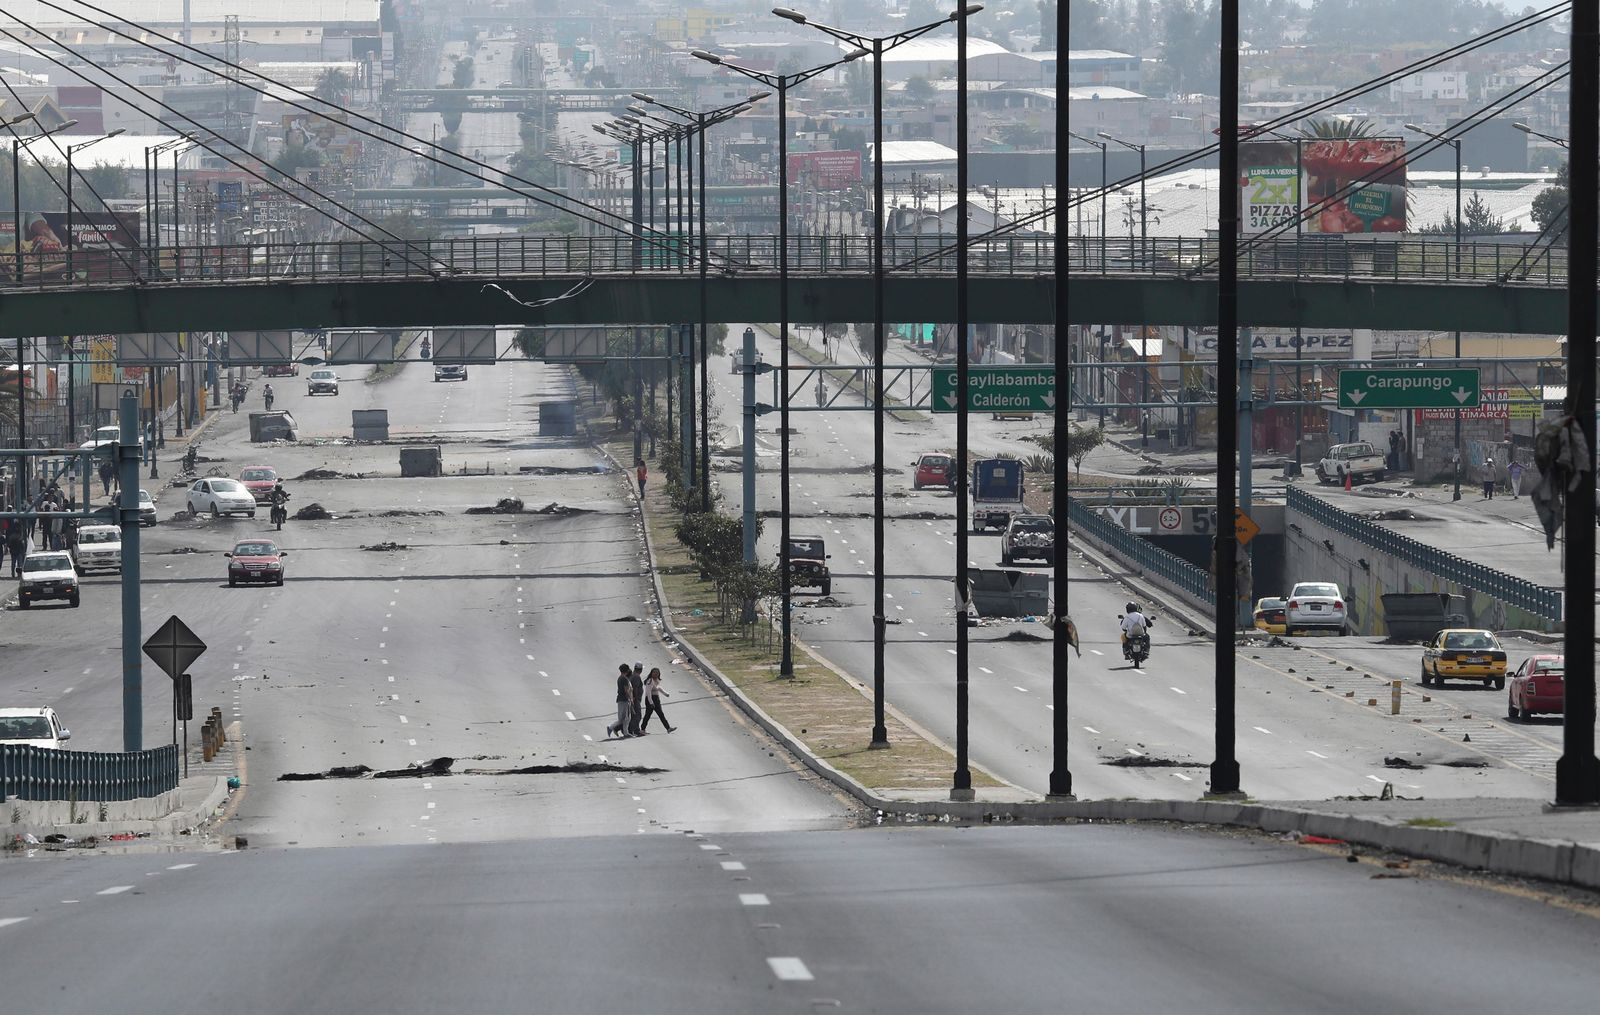 Few commuters make their way across the Pan American Highway, full of roadblocks placed by anti-government protesters, during a 24-hour military curfew and a day after violent protests across Quito, Ecuador, Sunday, Oct. 13, 2019. (AP Photo/Dolores Ochoa)